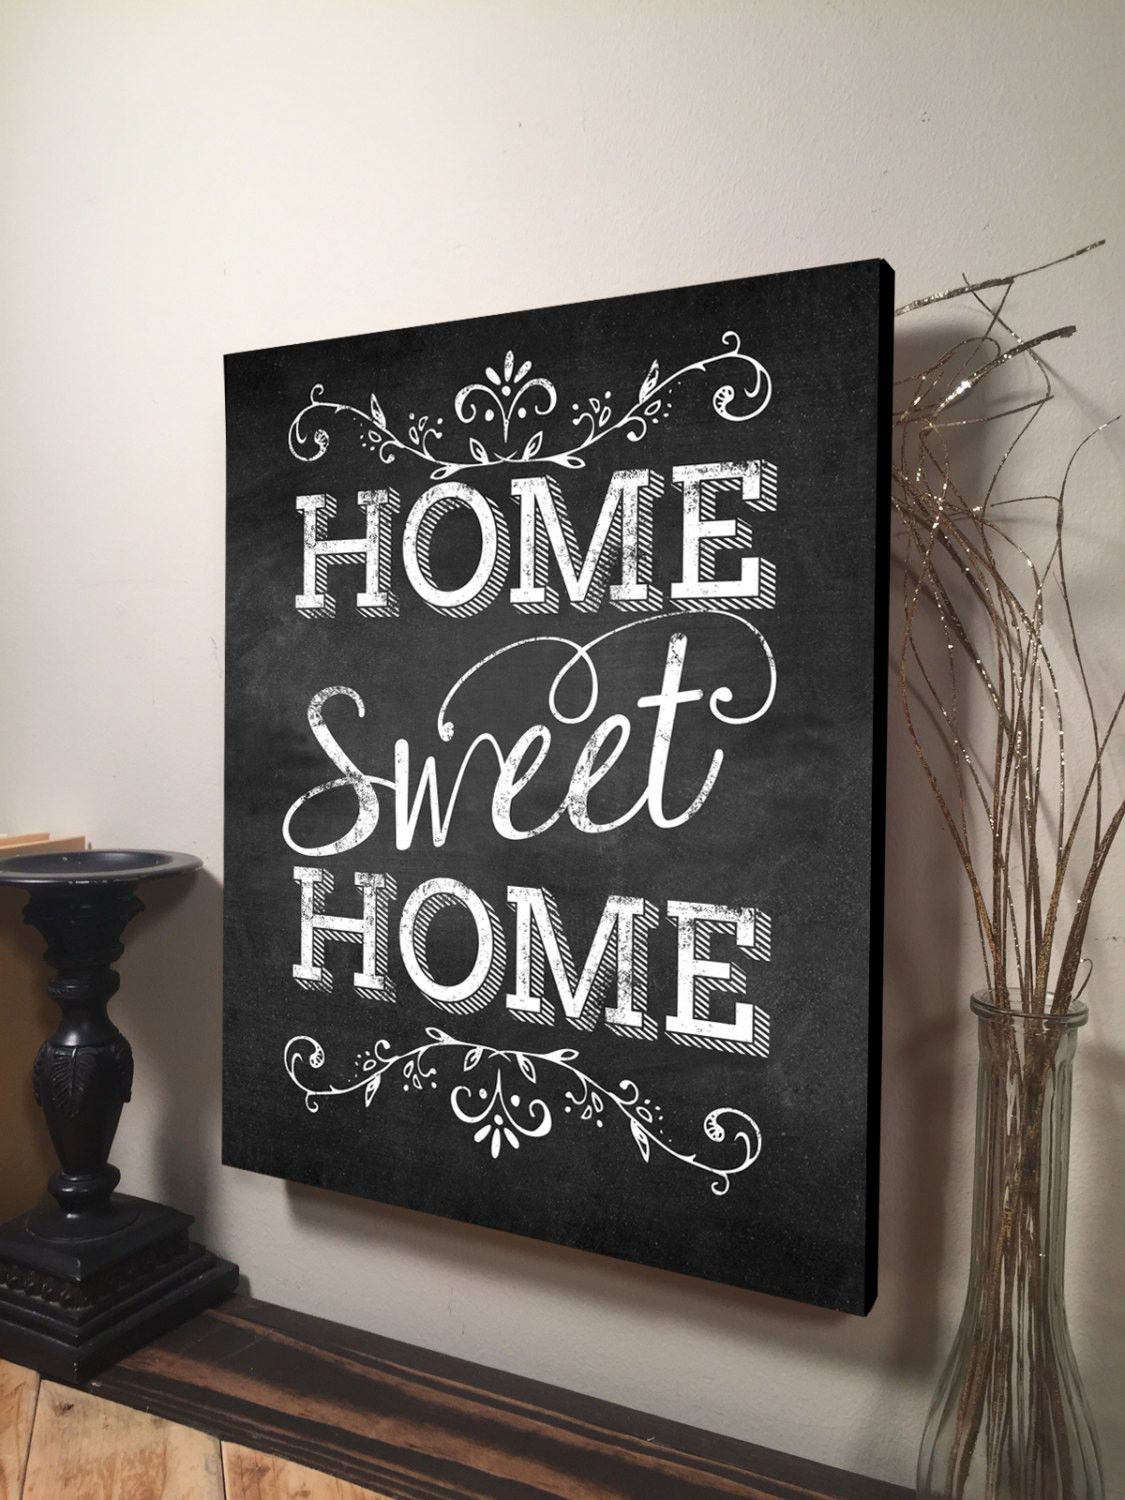 Home Sweet Home Sign Inspirational Quote Family Quote Signs Wall Hanging Art Housewarming Gift Home Decor